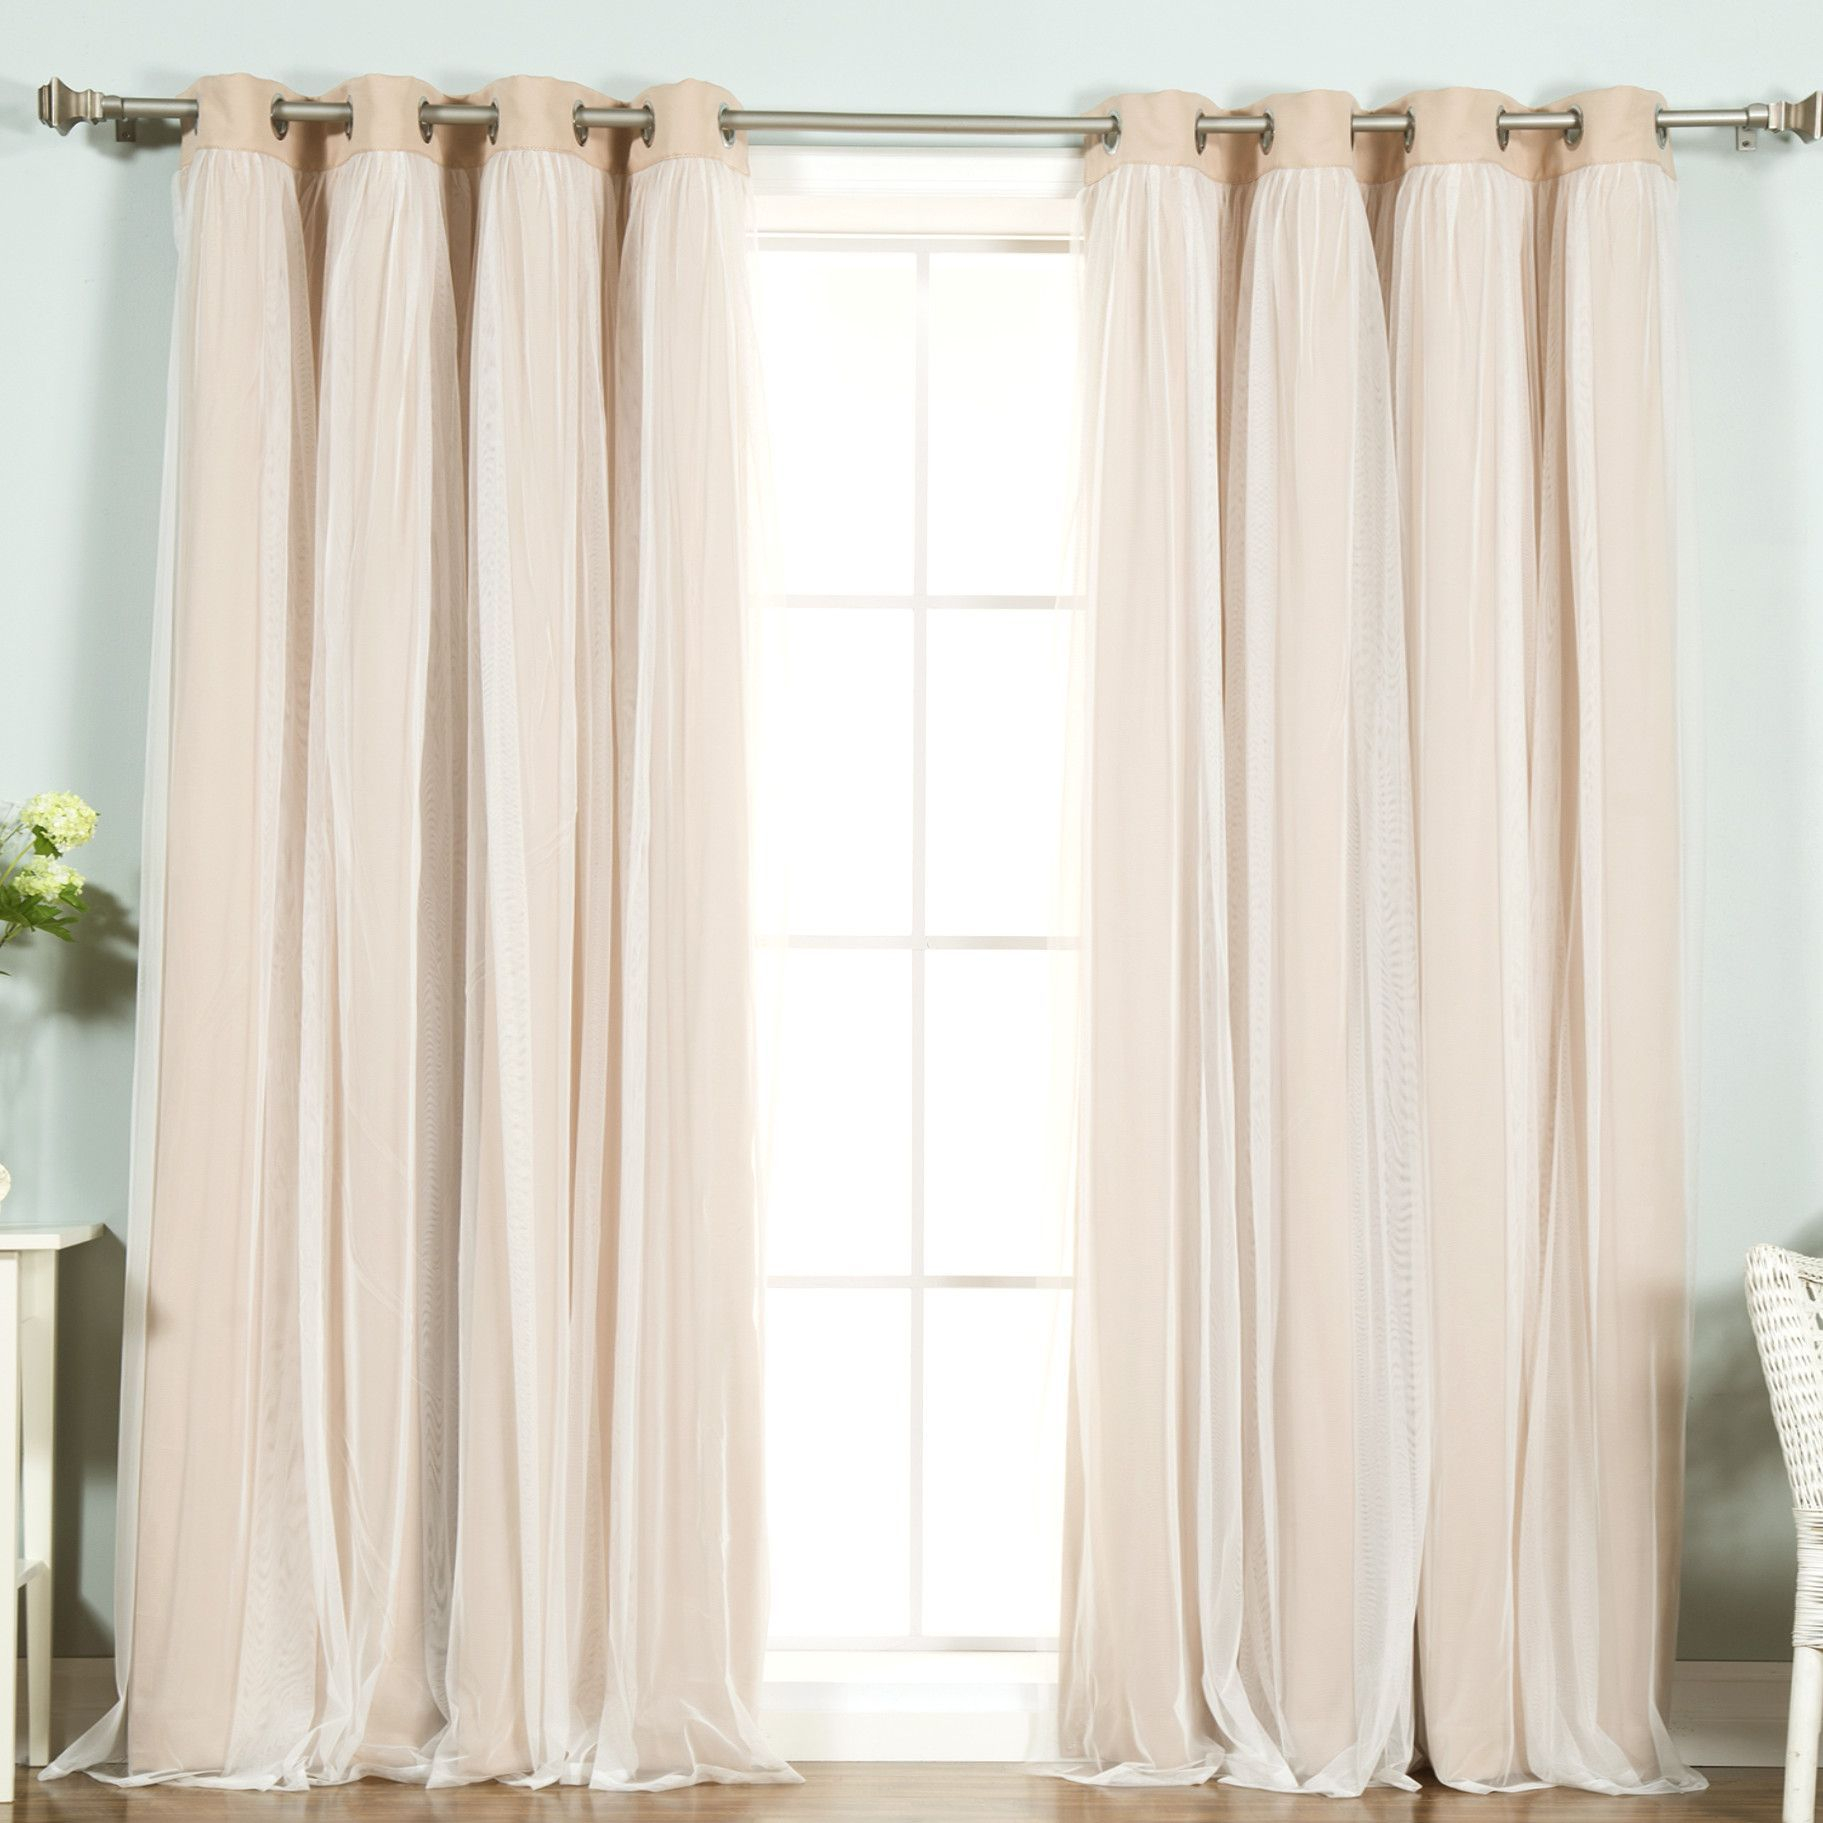 Lace Tulle Overlay Blackout Curtain Panel | Oh Decor Curtain Inside Star Punch Tulle Overlay Blackout Curtain Panel Pairs (View 24 of 30)